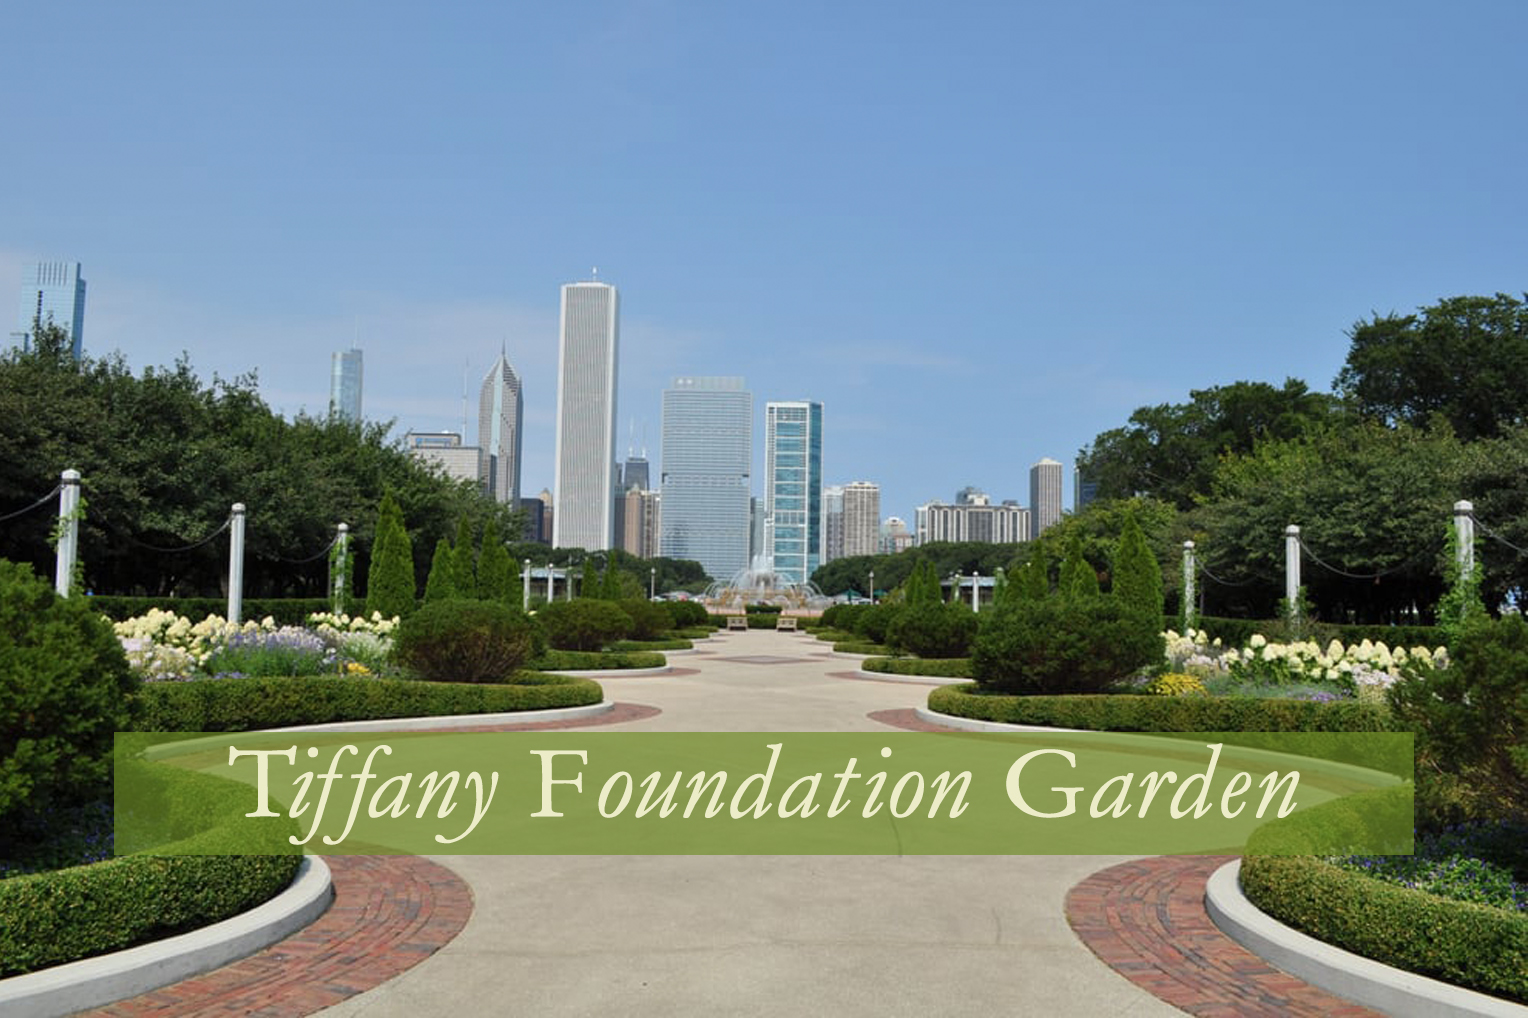 Tiffany Foundation Garden.jpg